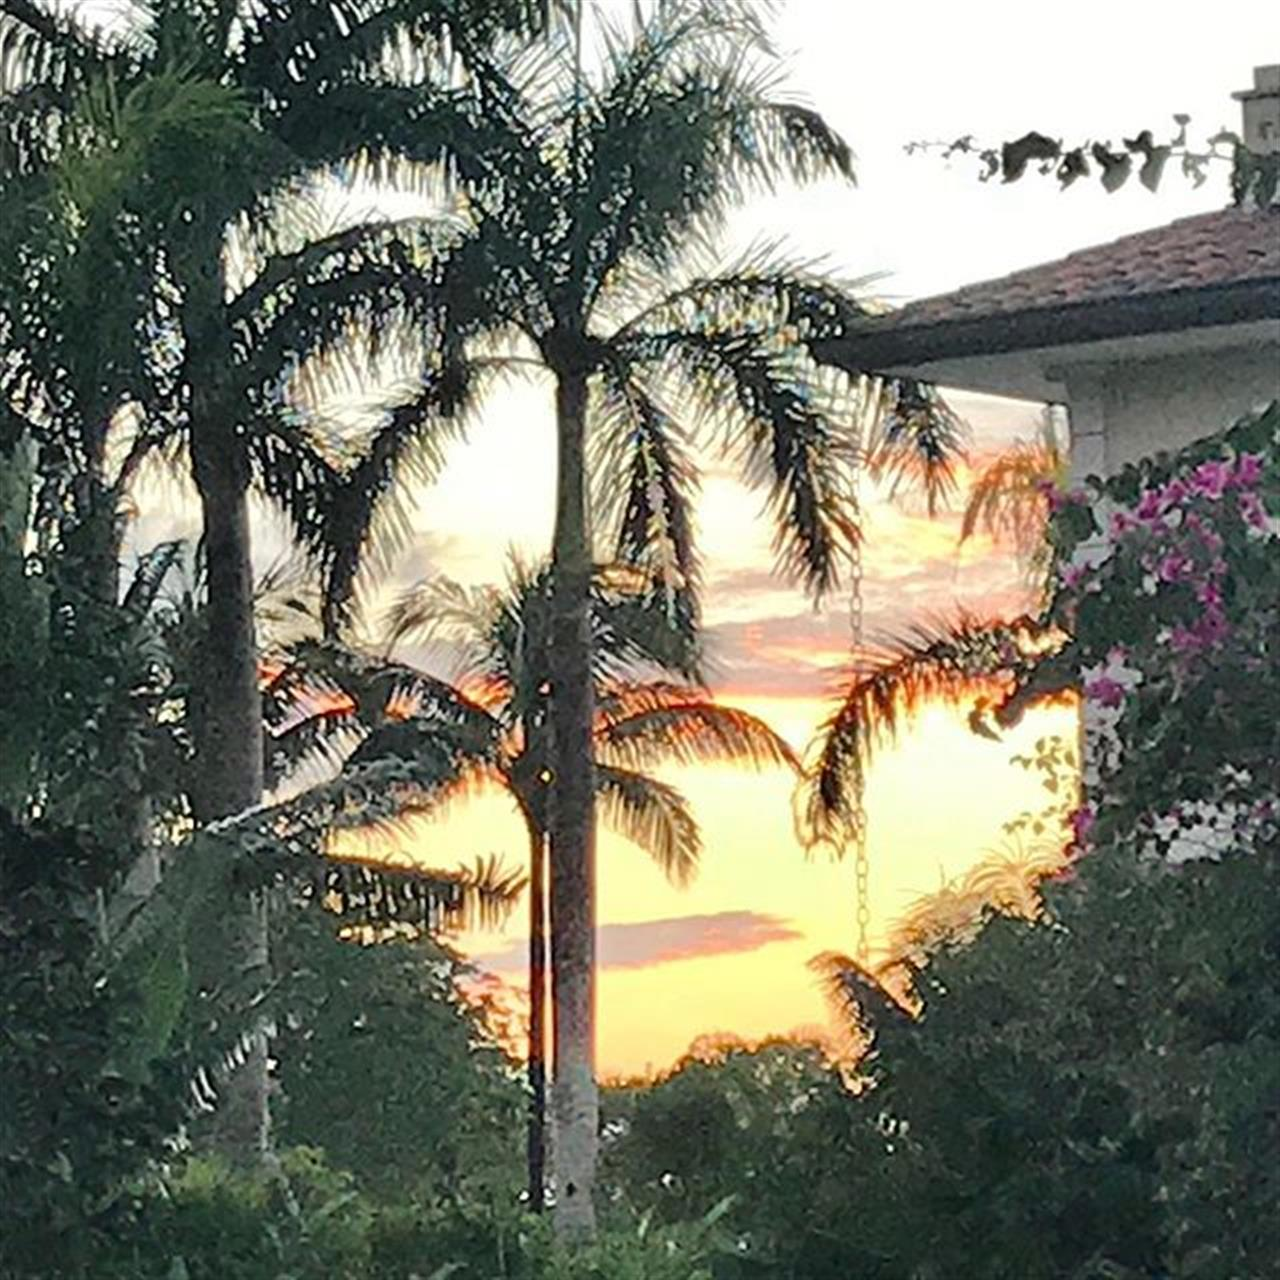 Love Caribbean Sunsets ??? #caribbean #sunset #sunsetlover #tropicalparadise #investmentproperty #dominicanrepublic #vacationrentals #vacationtime #caribbeandream #leadingrelocal Contact us! We have homes for rent and for sale.